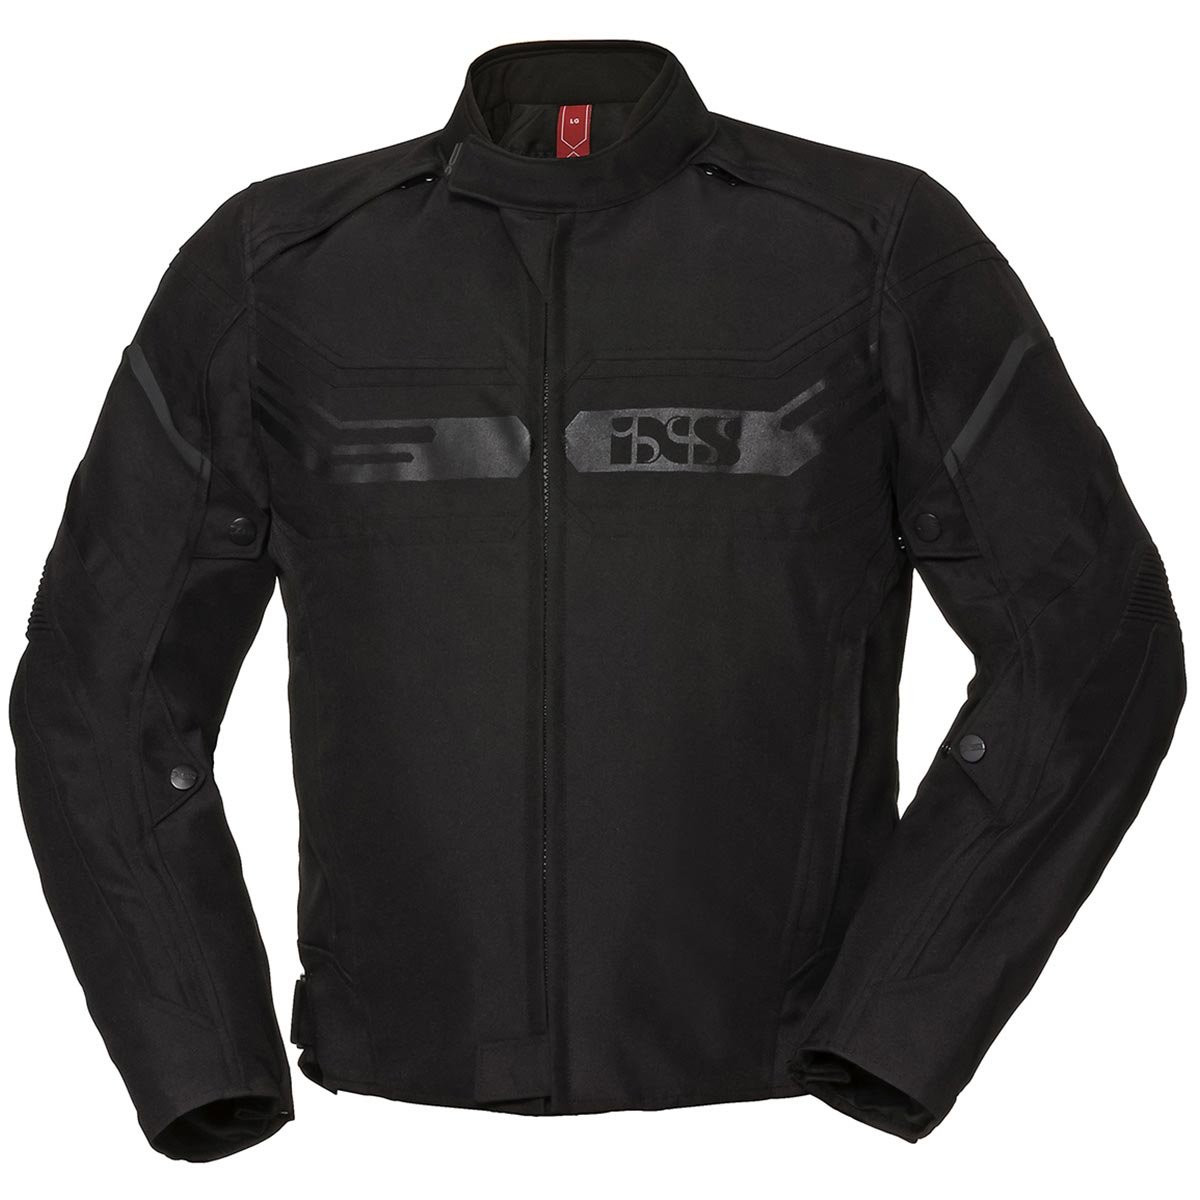 RS-400-ST JACKET